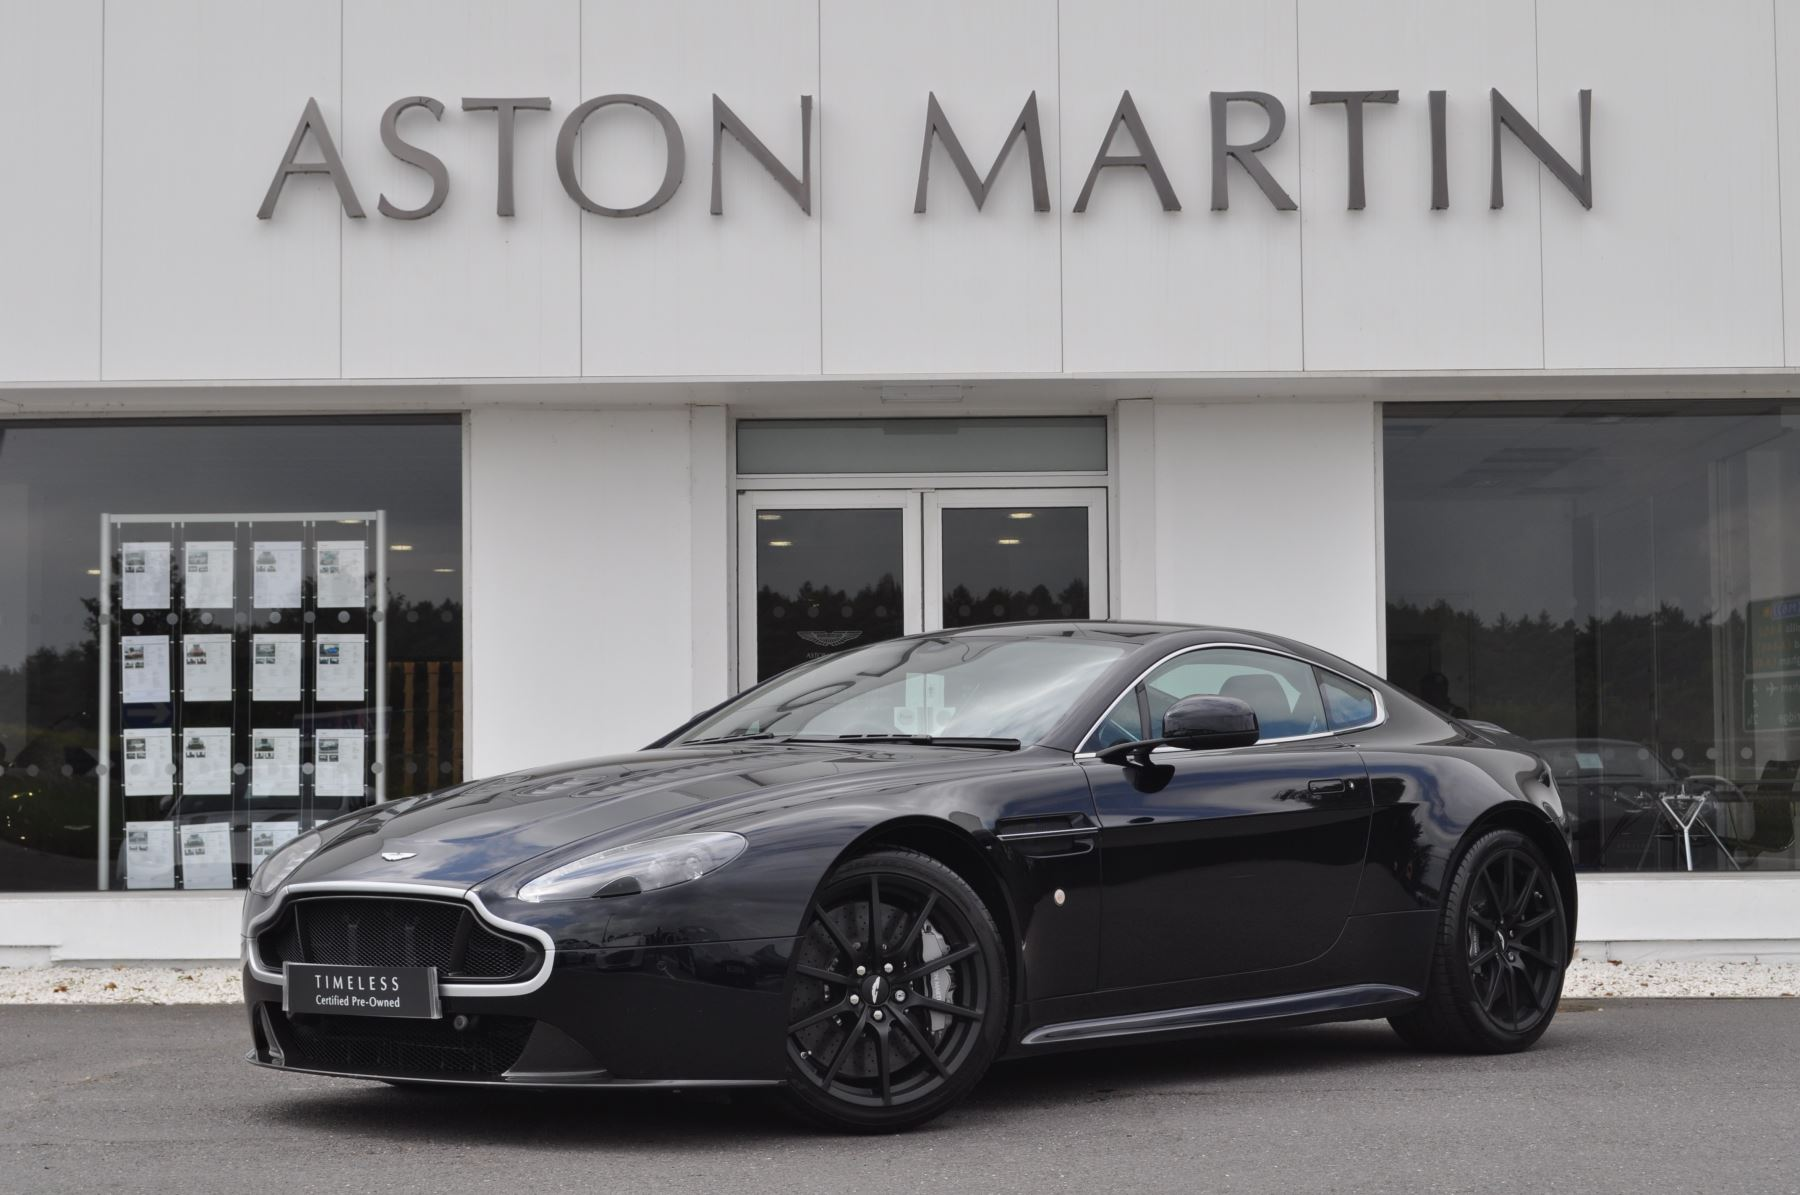 Aston Martin V12 Vantage S S 2dr Sportshift III 5.9 Automatic 3 door Coupe (2016) image